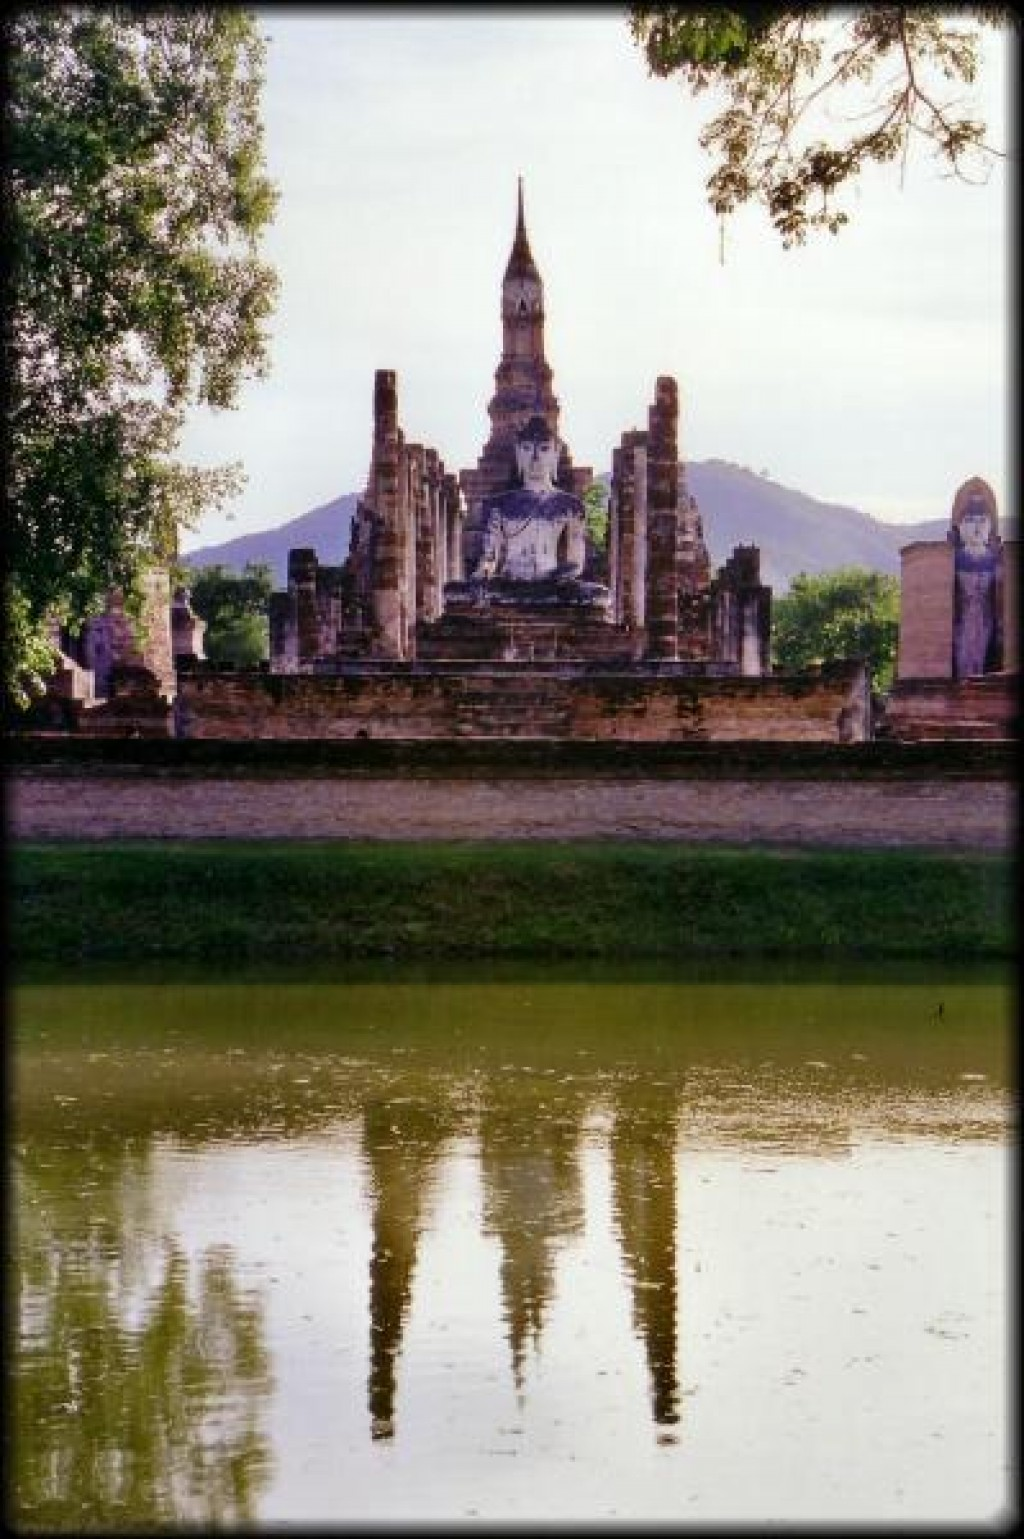 Sukhothai was very different to Ayutthaya in that all the temples are in one area of the city, in a huge spread out park.  There is greenery everywhere, rivers flowing around temples, and lots and lots of space.